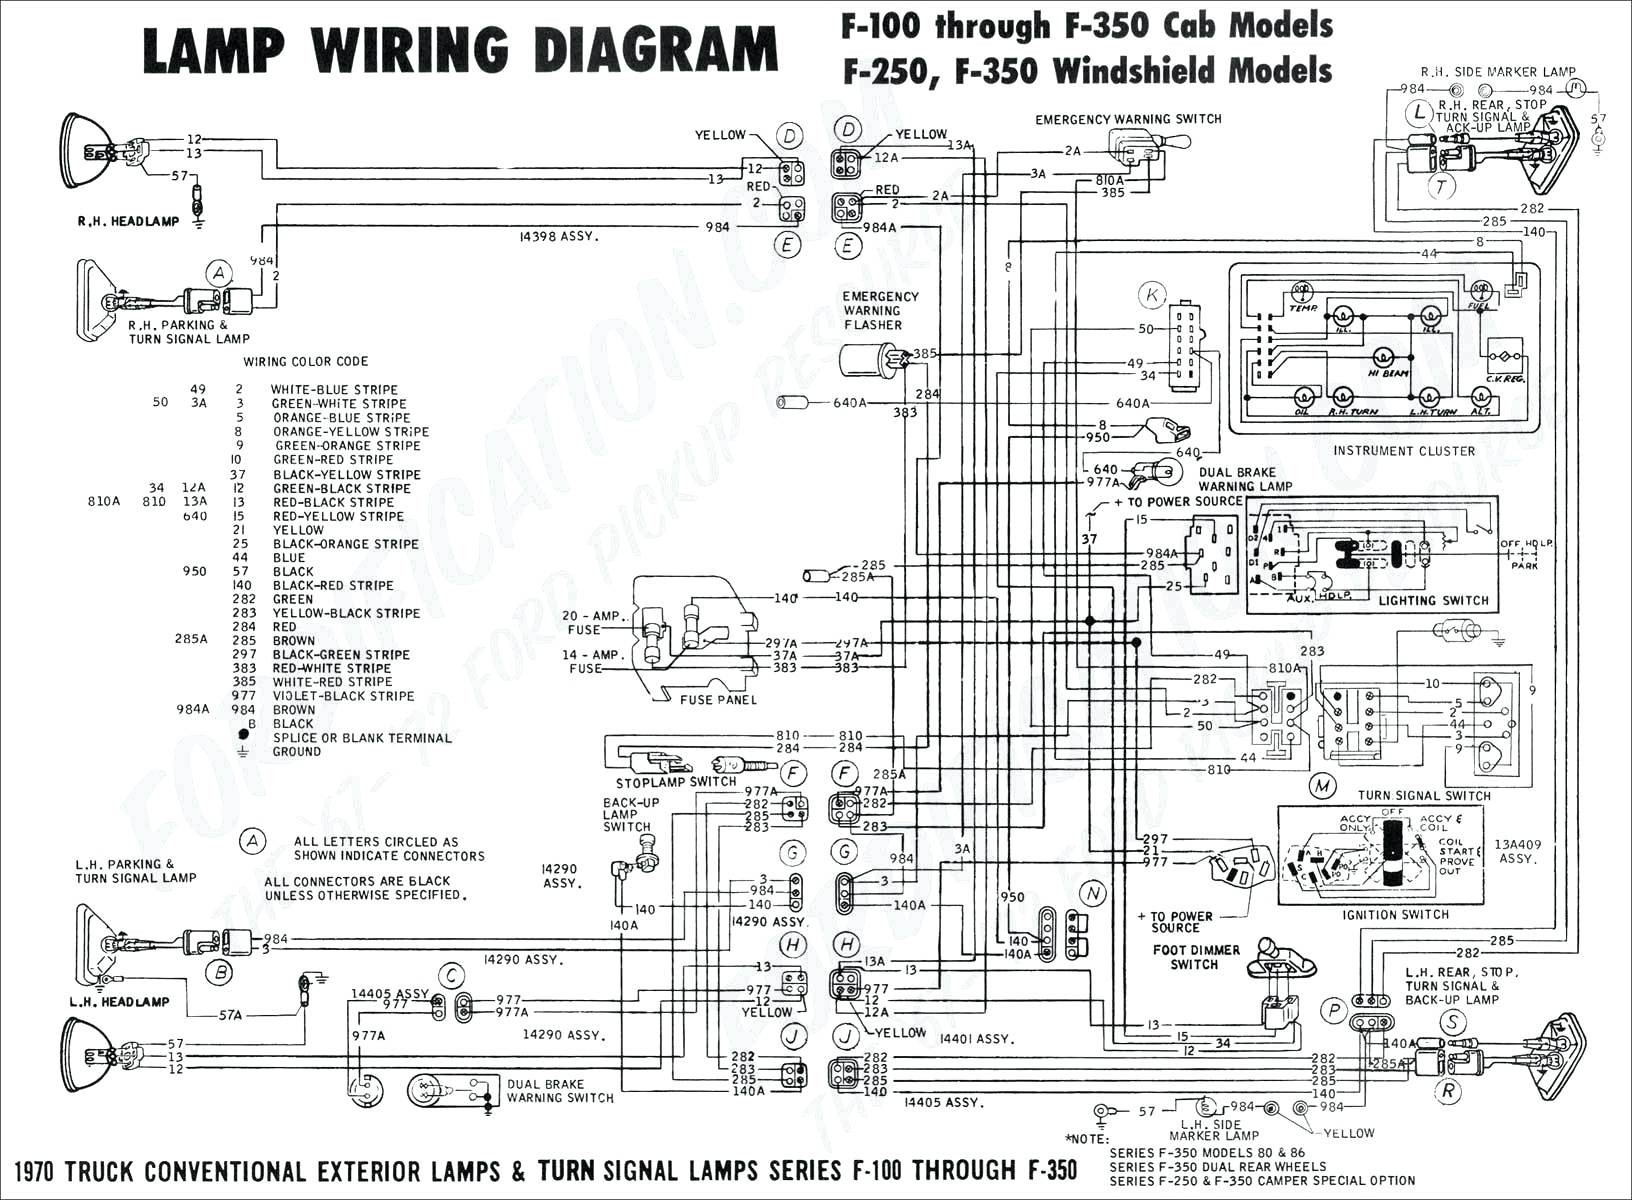 2001 Ford F350 Wiring Diagrams - Wiring Diagram - 2001 Ford F250 Trailer Wiring Diagram